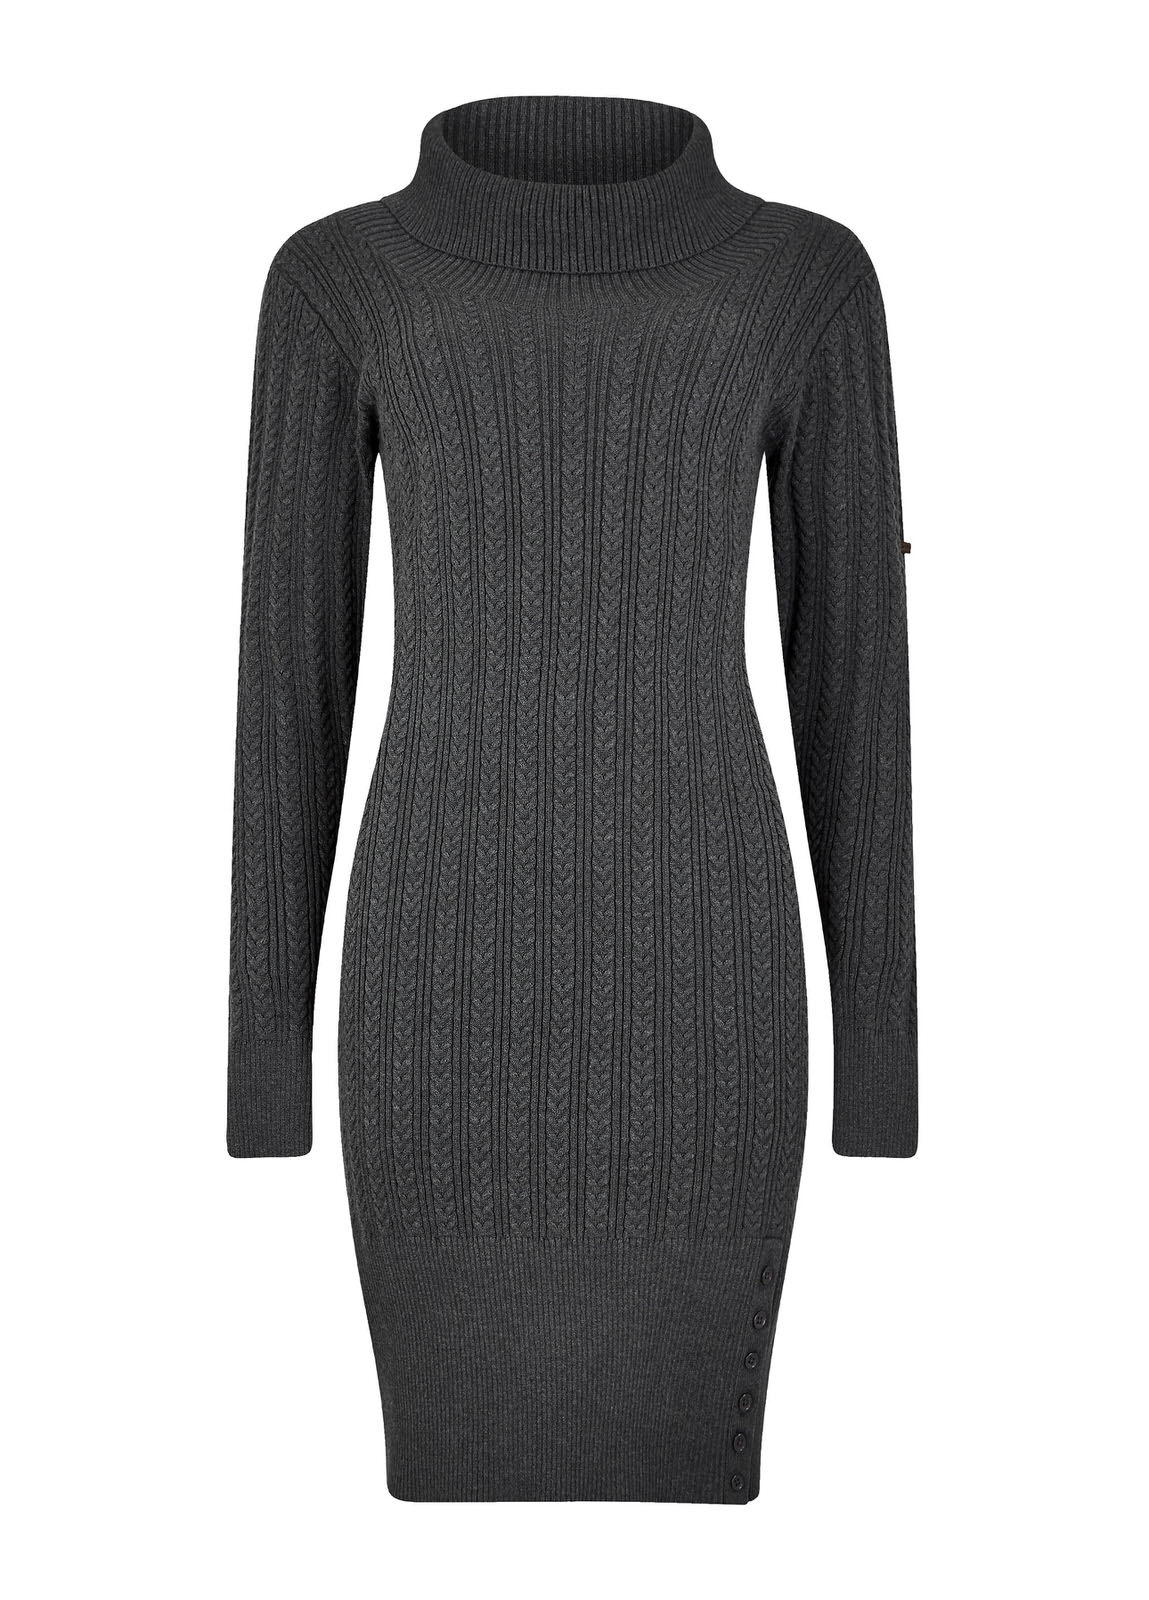 Westport_Sweater_dress_Graphite_Image_1